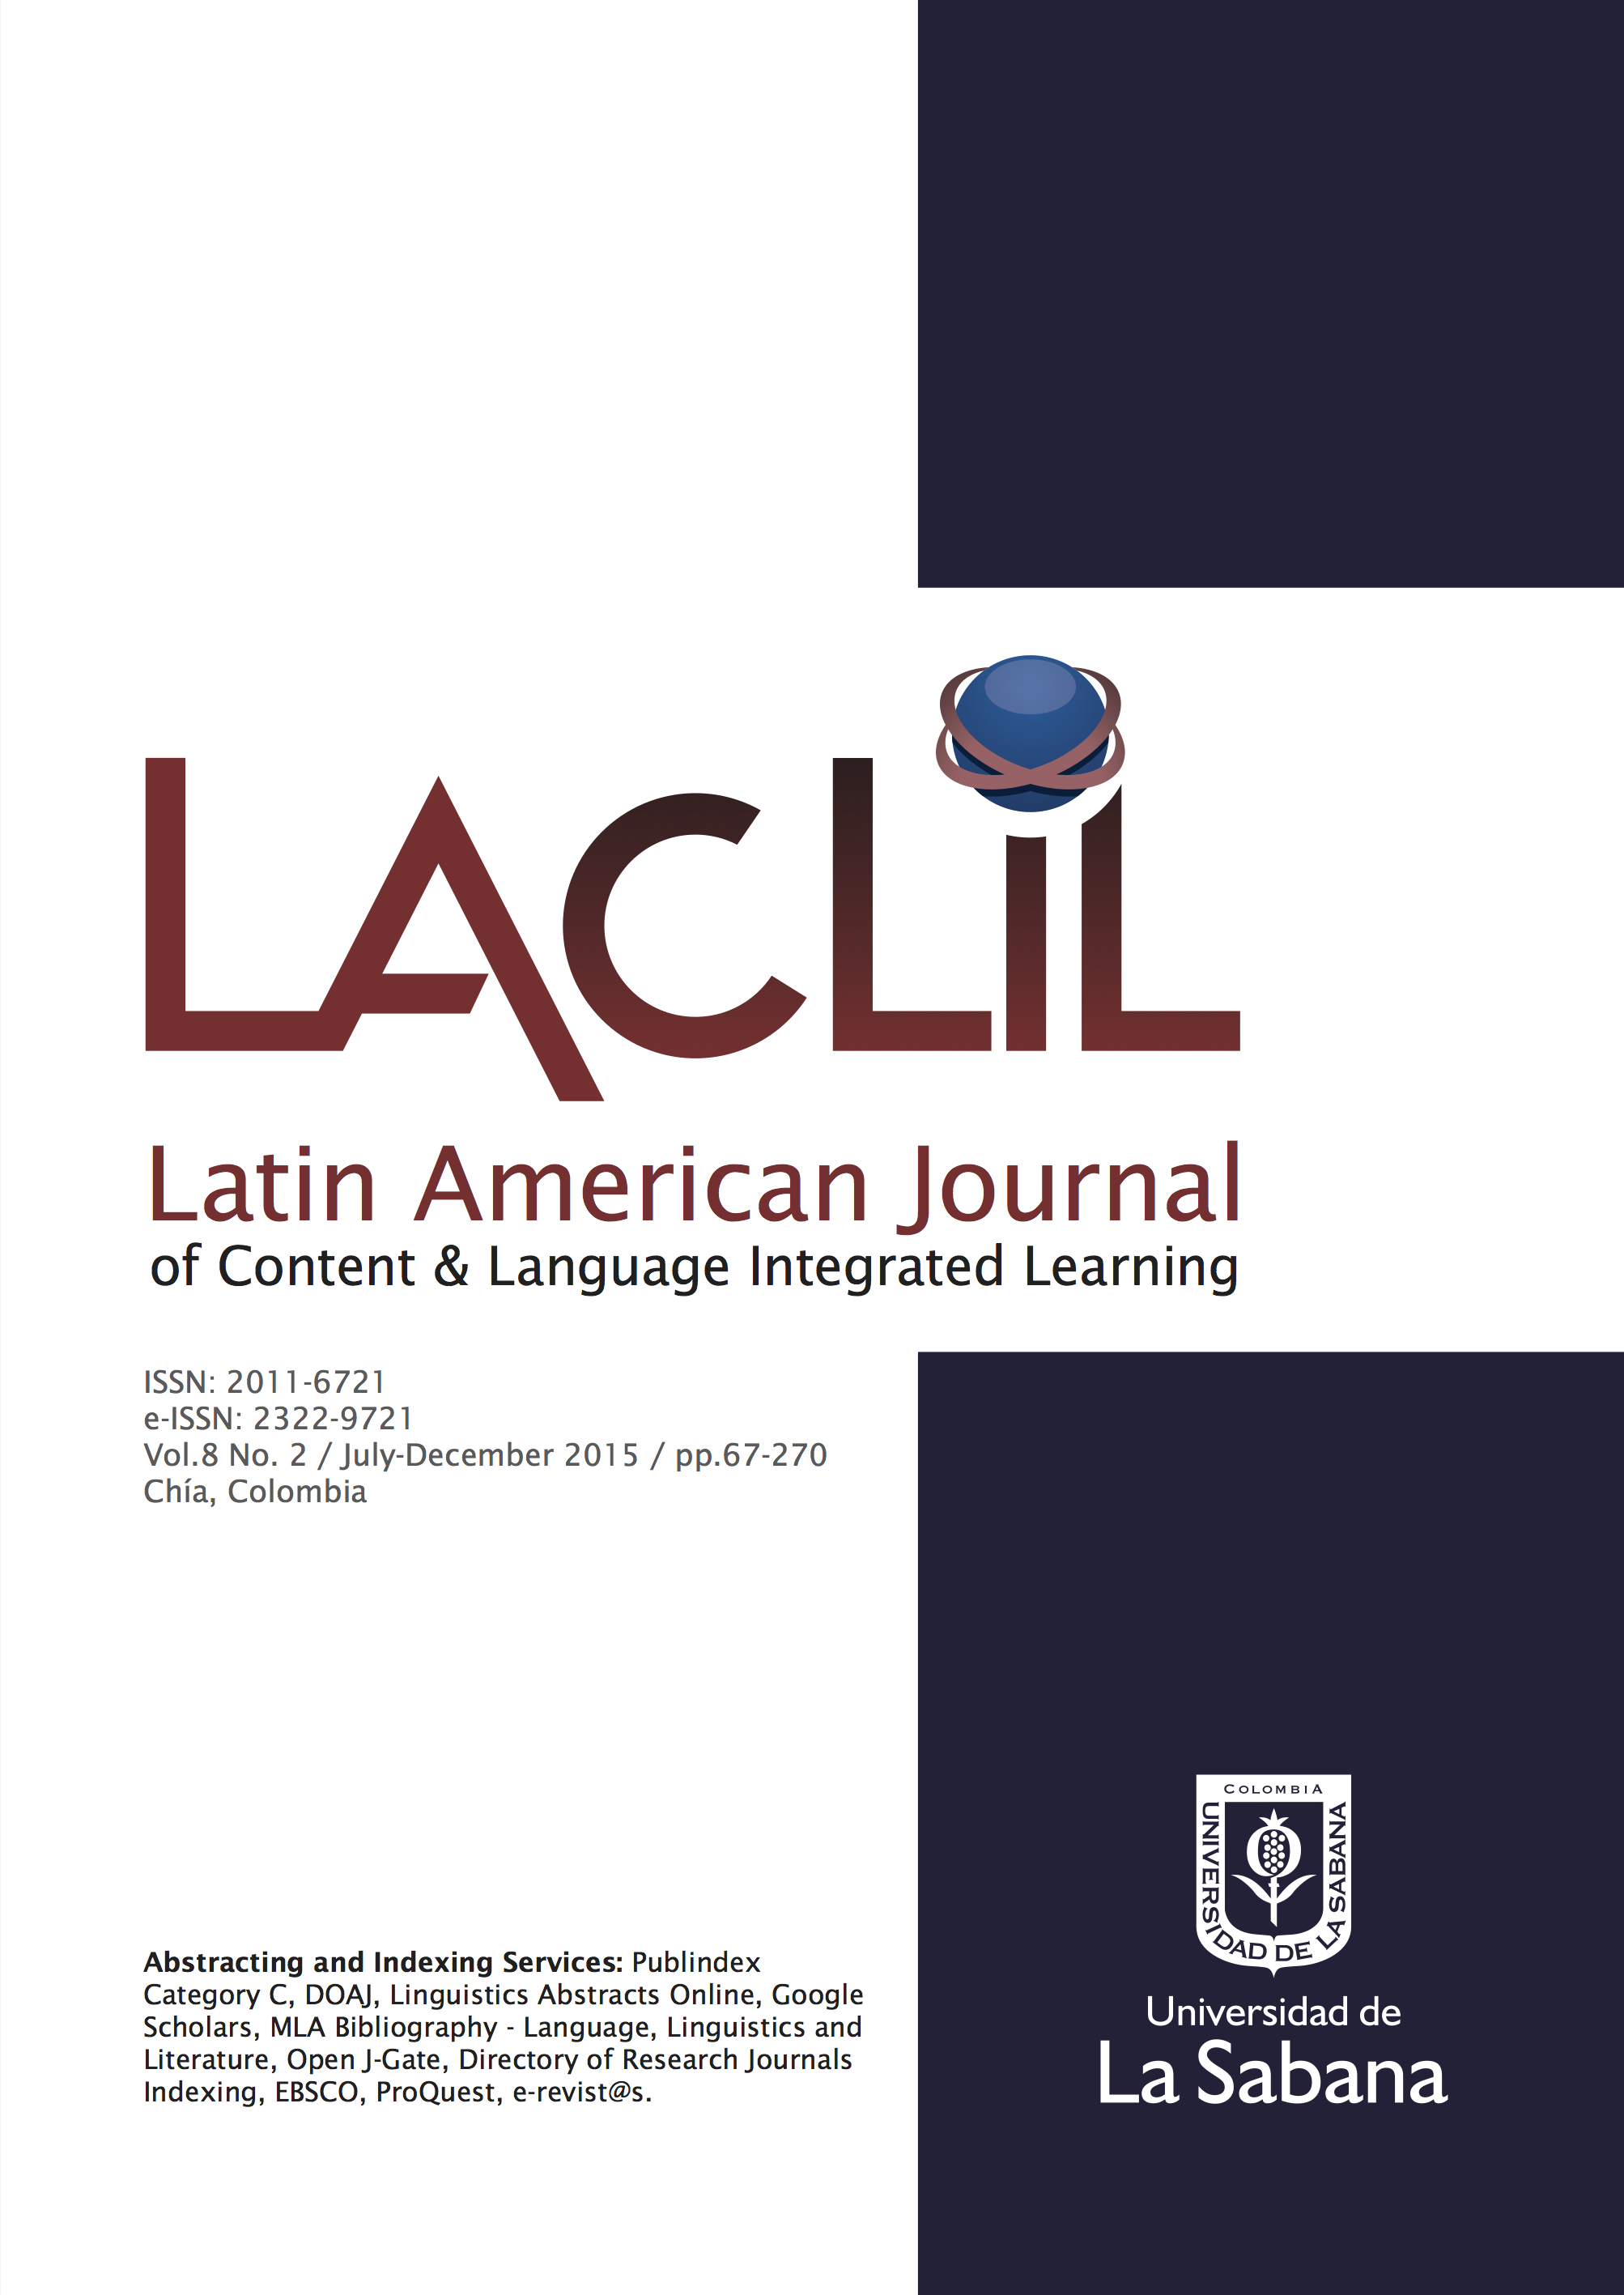 LACLIL Vol. 8 No. 2, July-December 2015